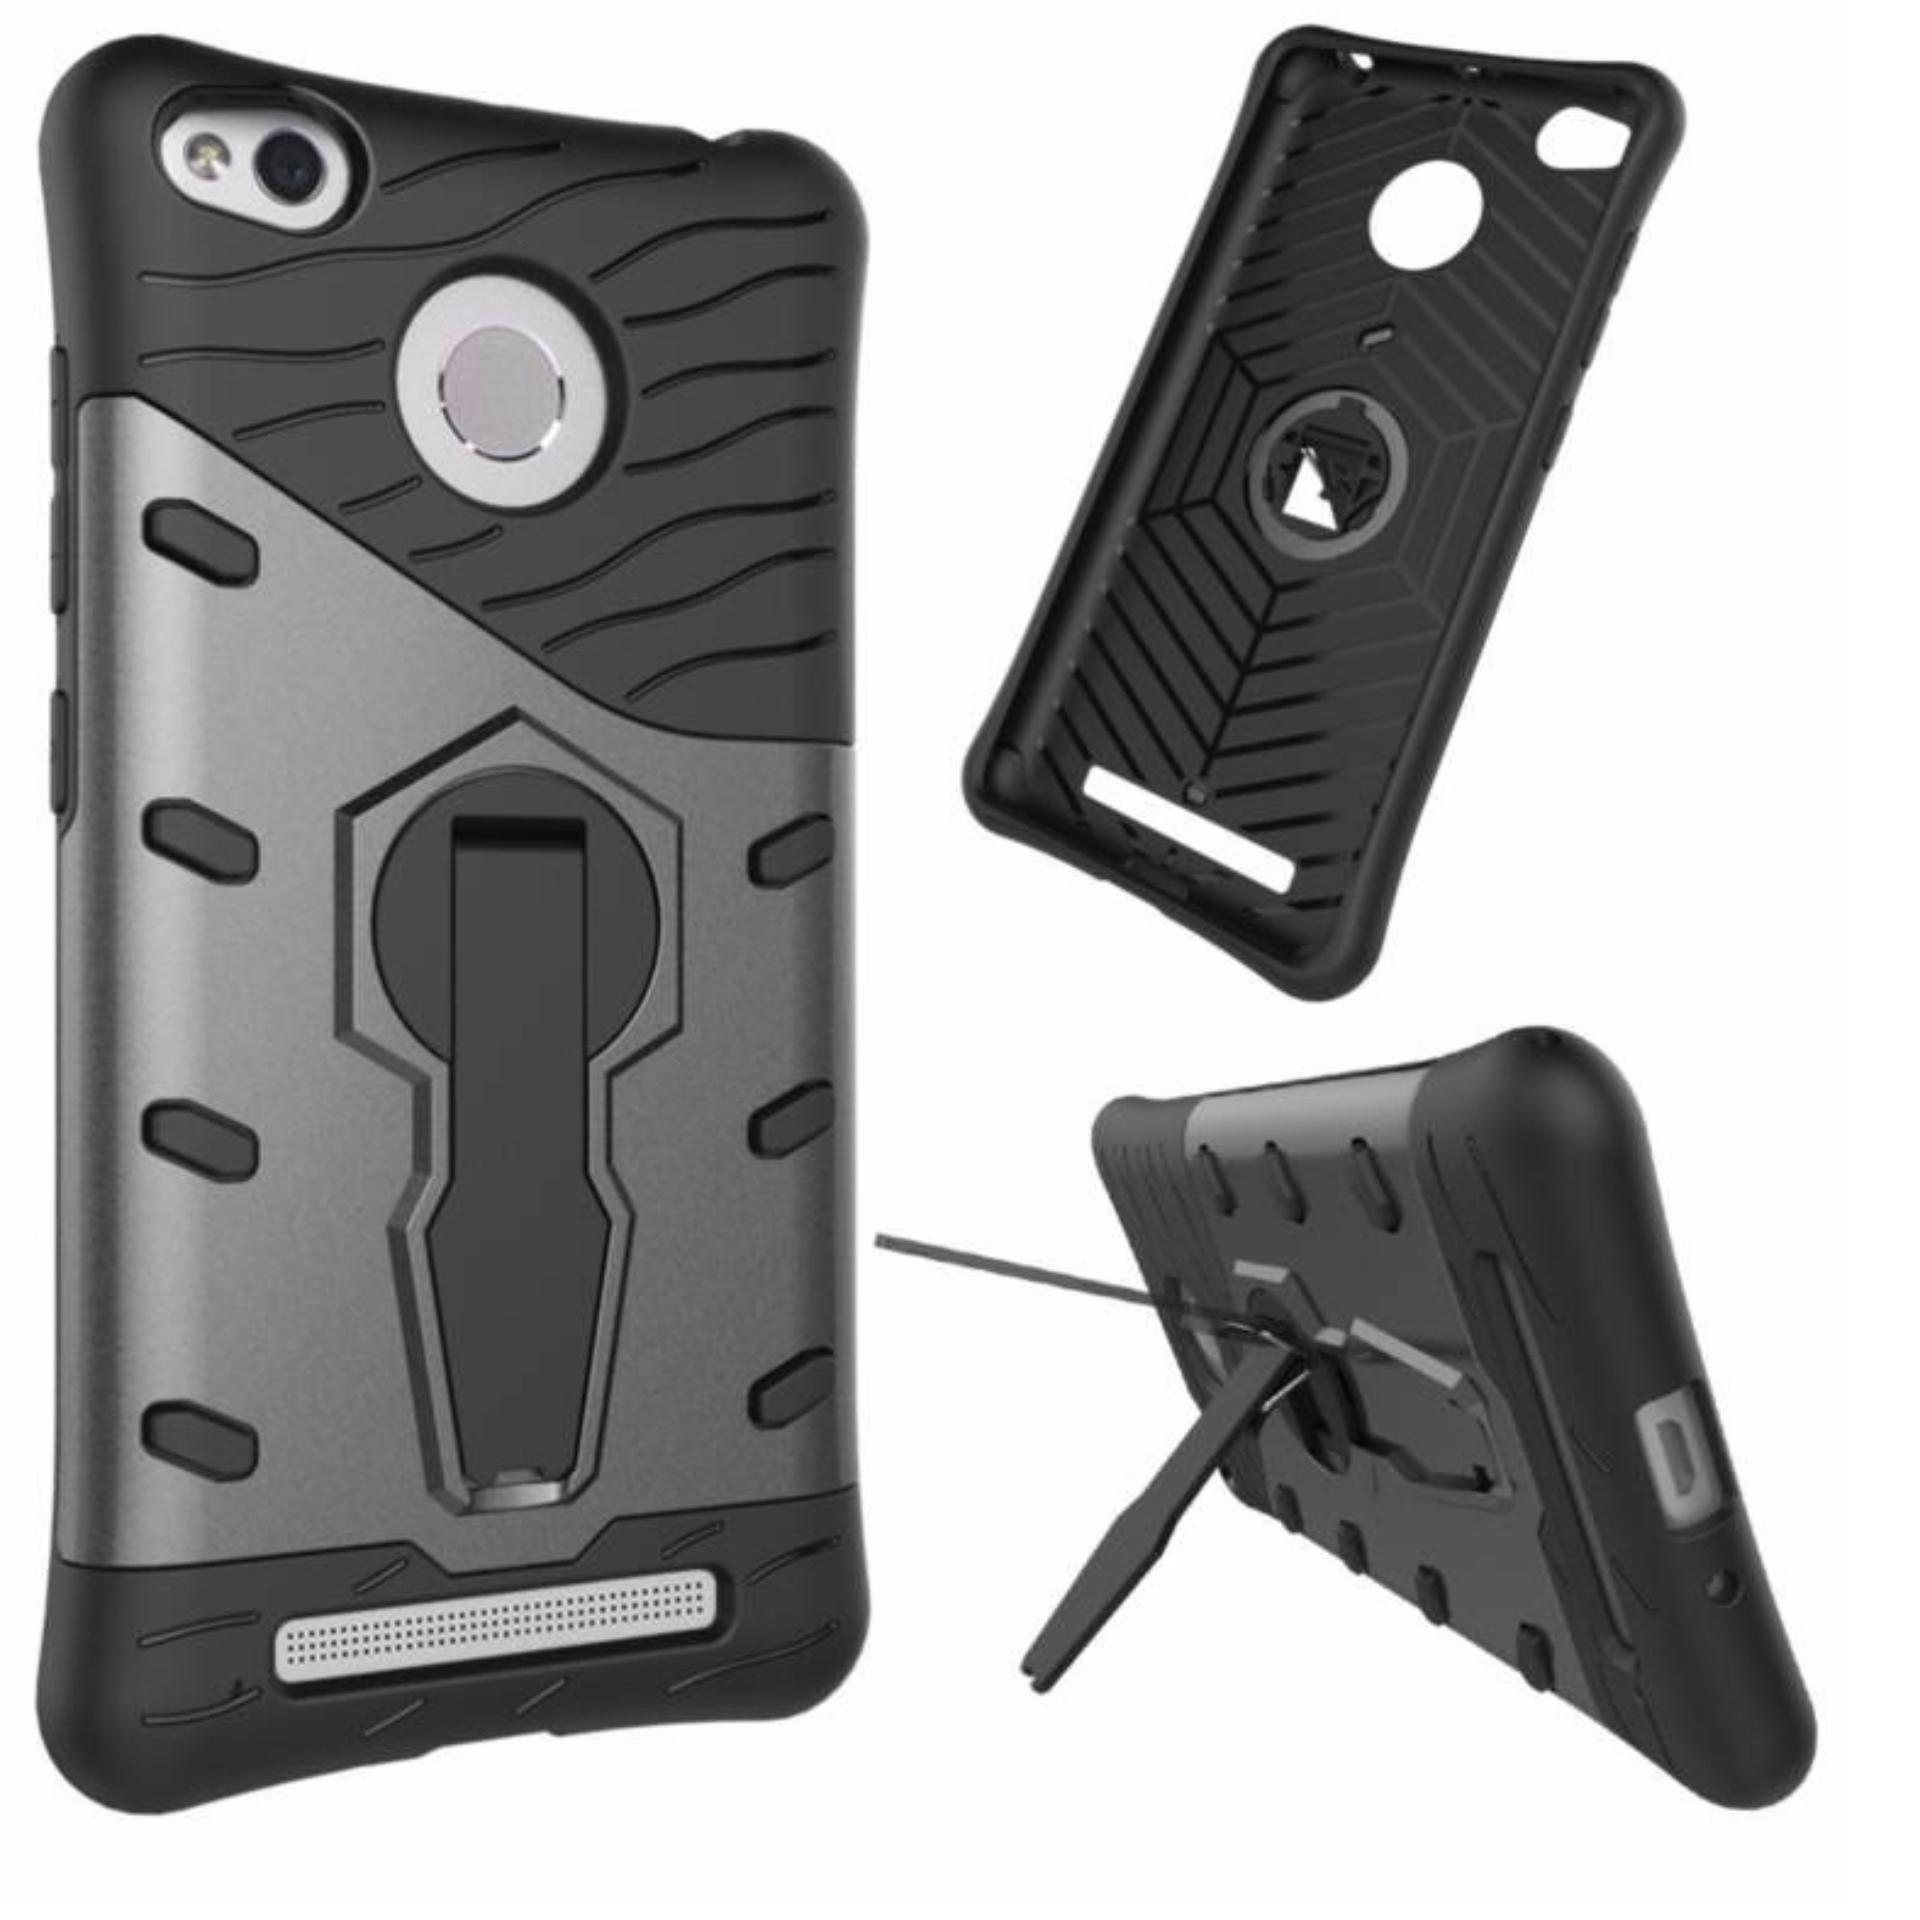 ... iCase Sniper Armor Xiaomi Redmi 3 Pro Dual Layered TPU+PC Hybrid Back Cover Phone ...